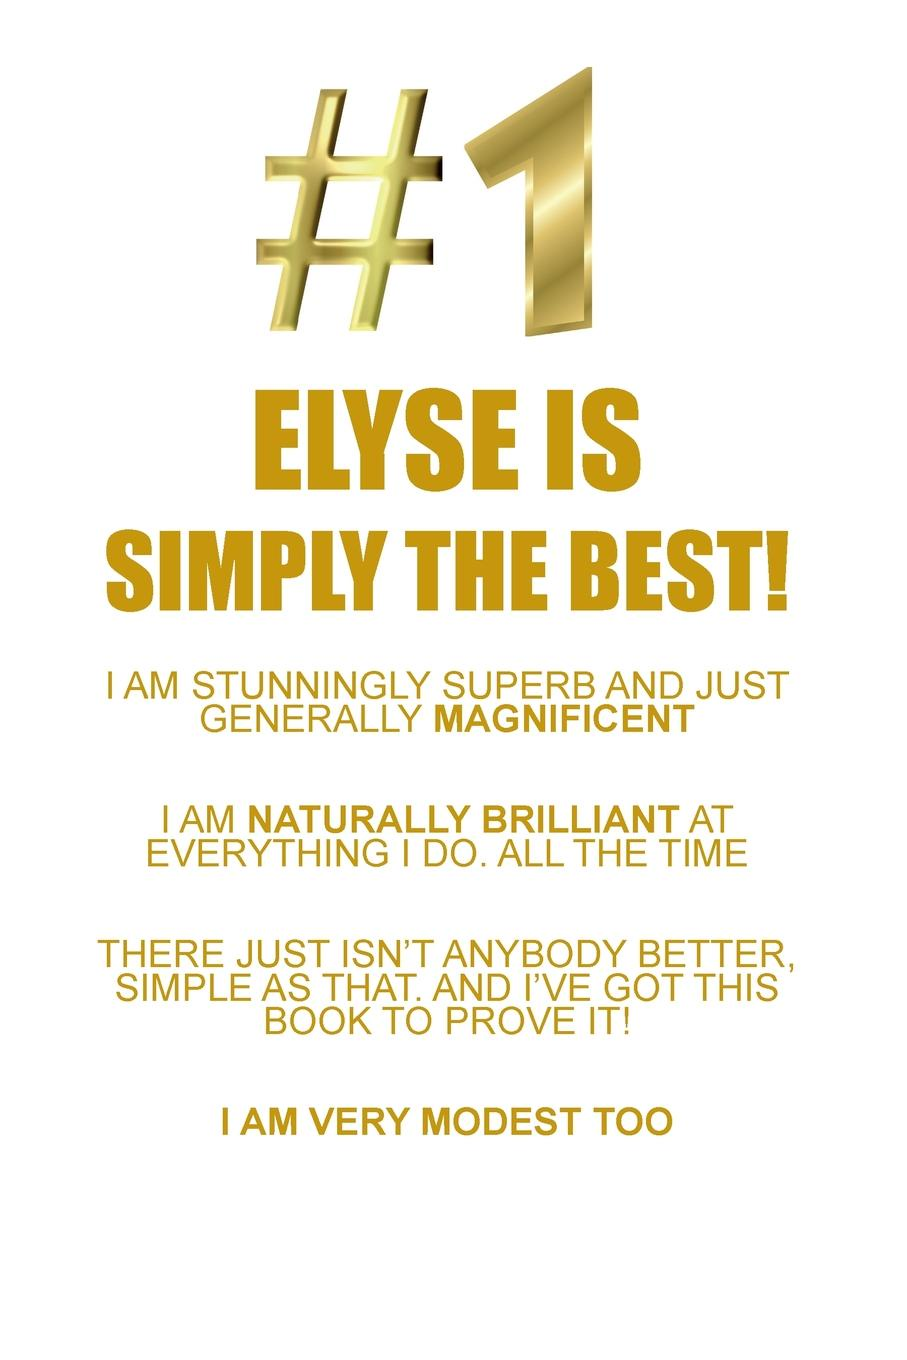 ELYSE IS SIMPLY THE BEST AFFIRMATIONS WORKBOOK Positive Affirmations Workbook Includes. Mentoring Questions, Guidance, Supporting You